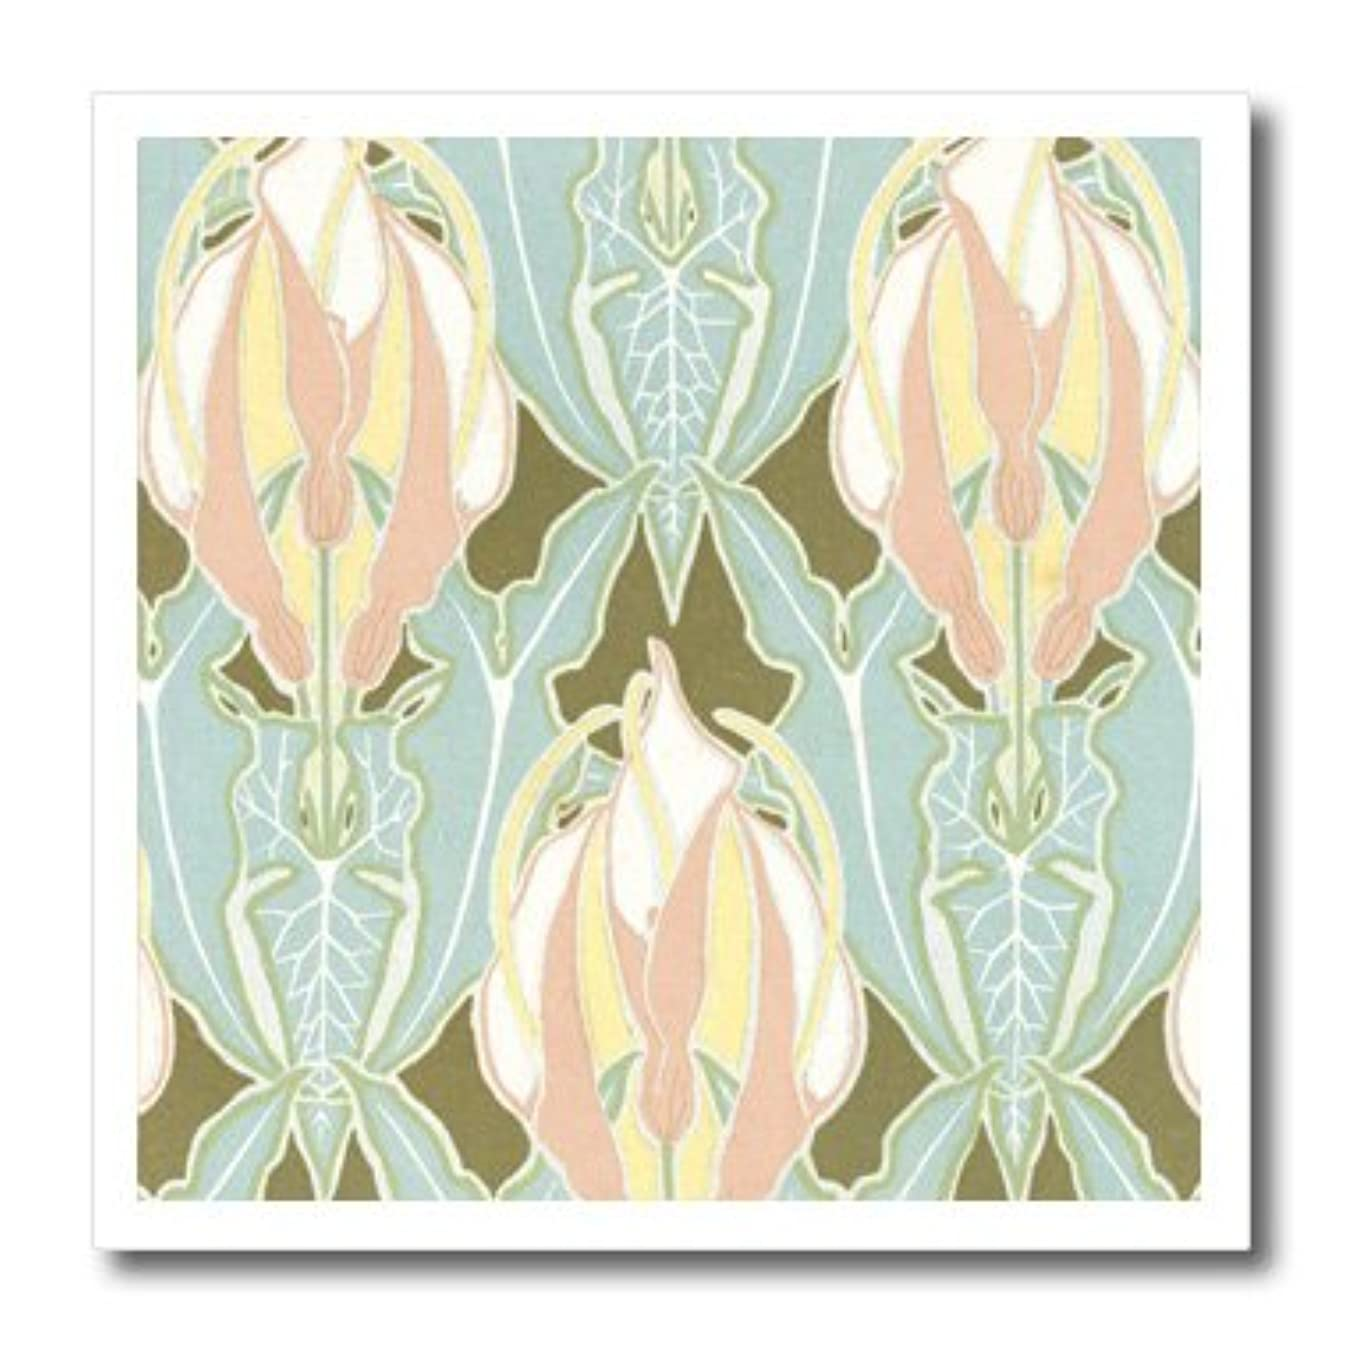 3dRose ht_113421_1 Lovely Ornate Pastel Pink Flowers with Blue Leaves Nature Floral Vintage Art Nouveau Design-Iron On Heat Transfer, 8 by 8